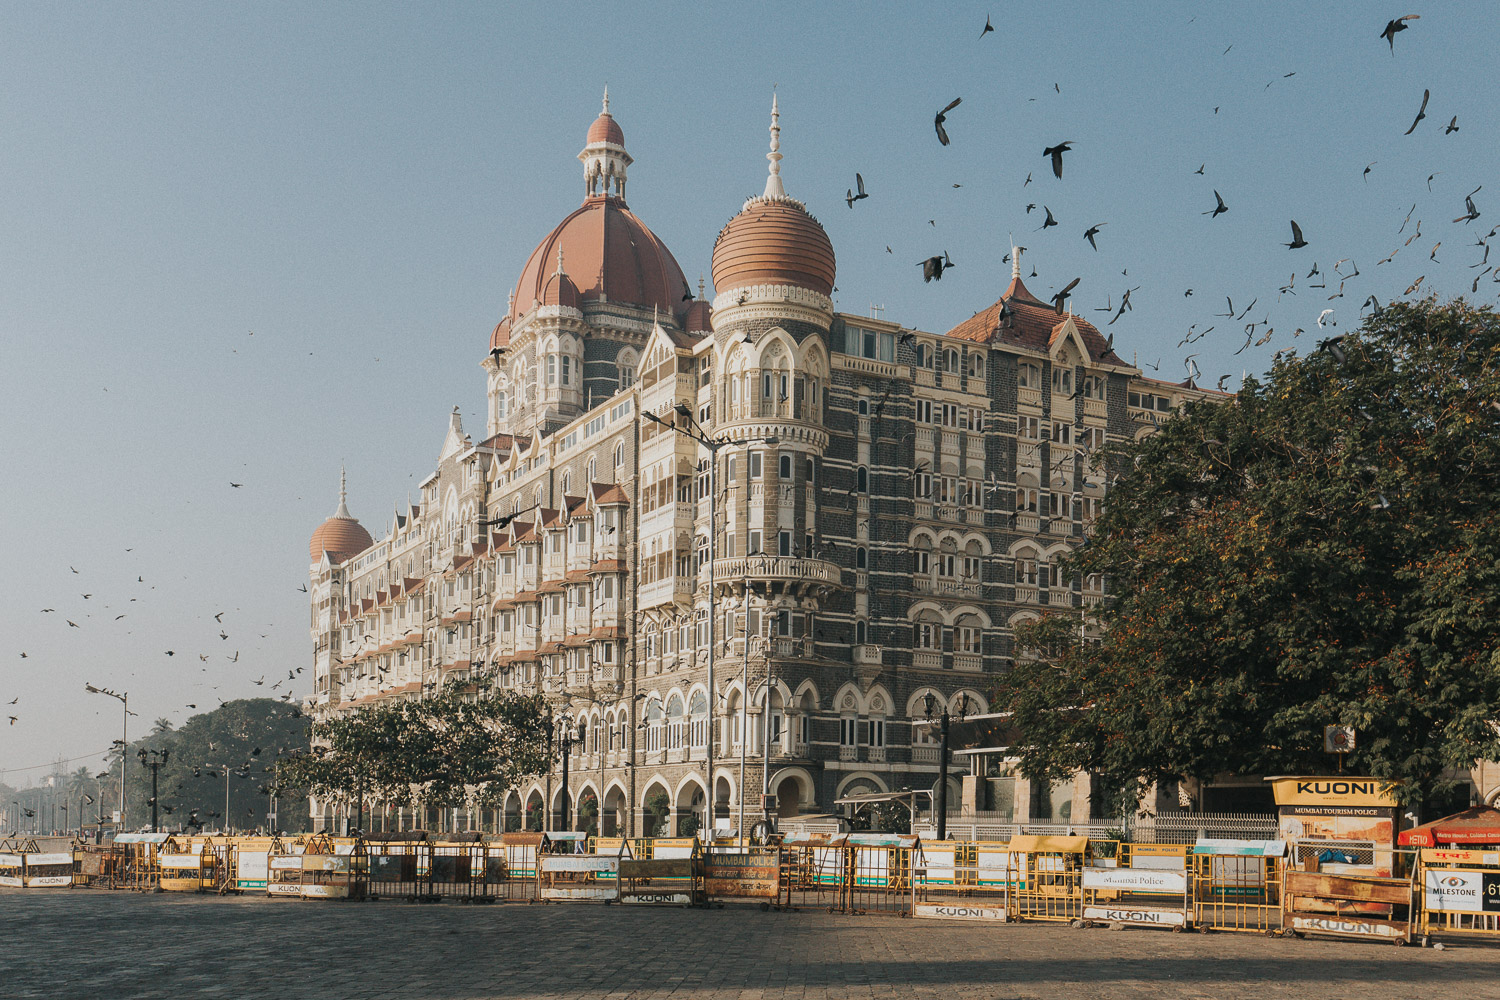 Taj hotel Mumbai India at Sunrise - What are your biggest fears as a photographer?